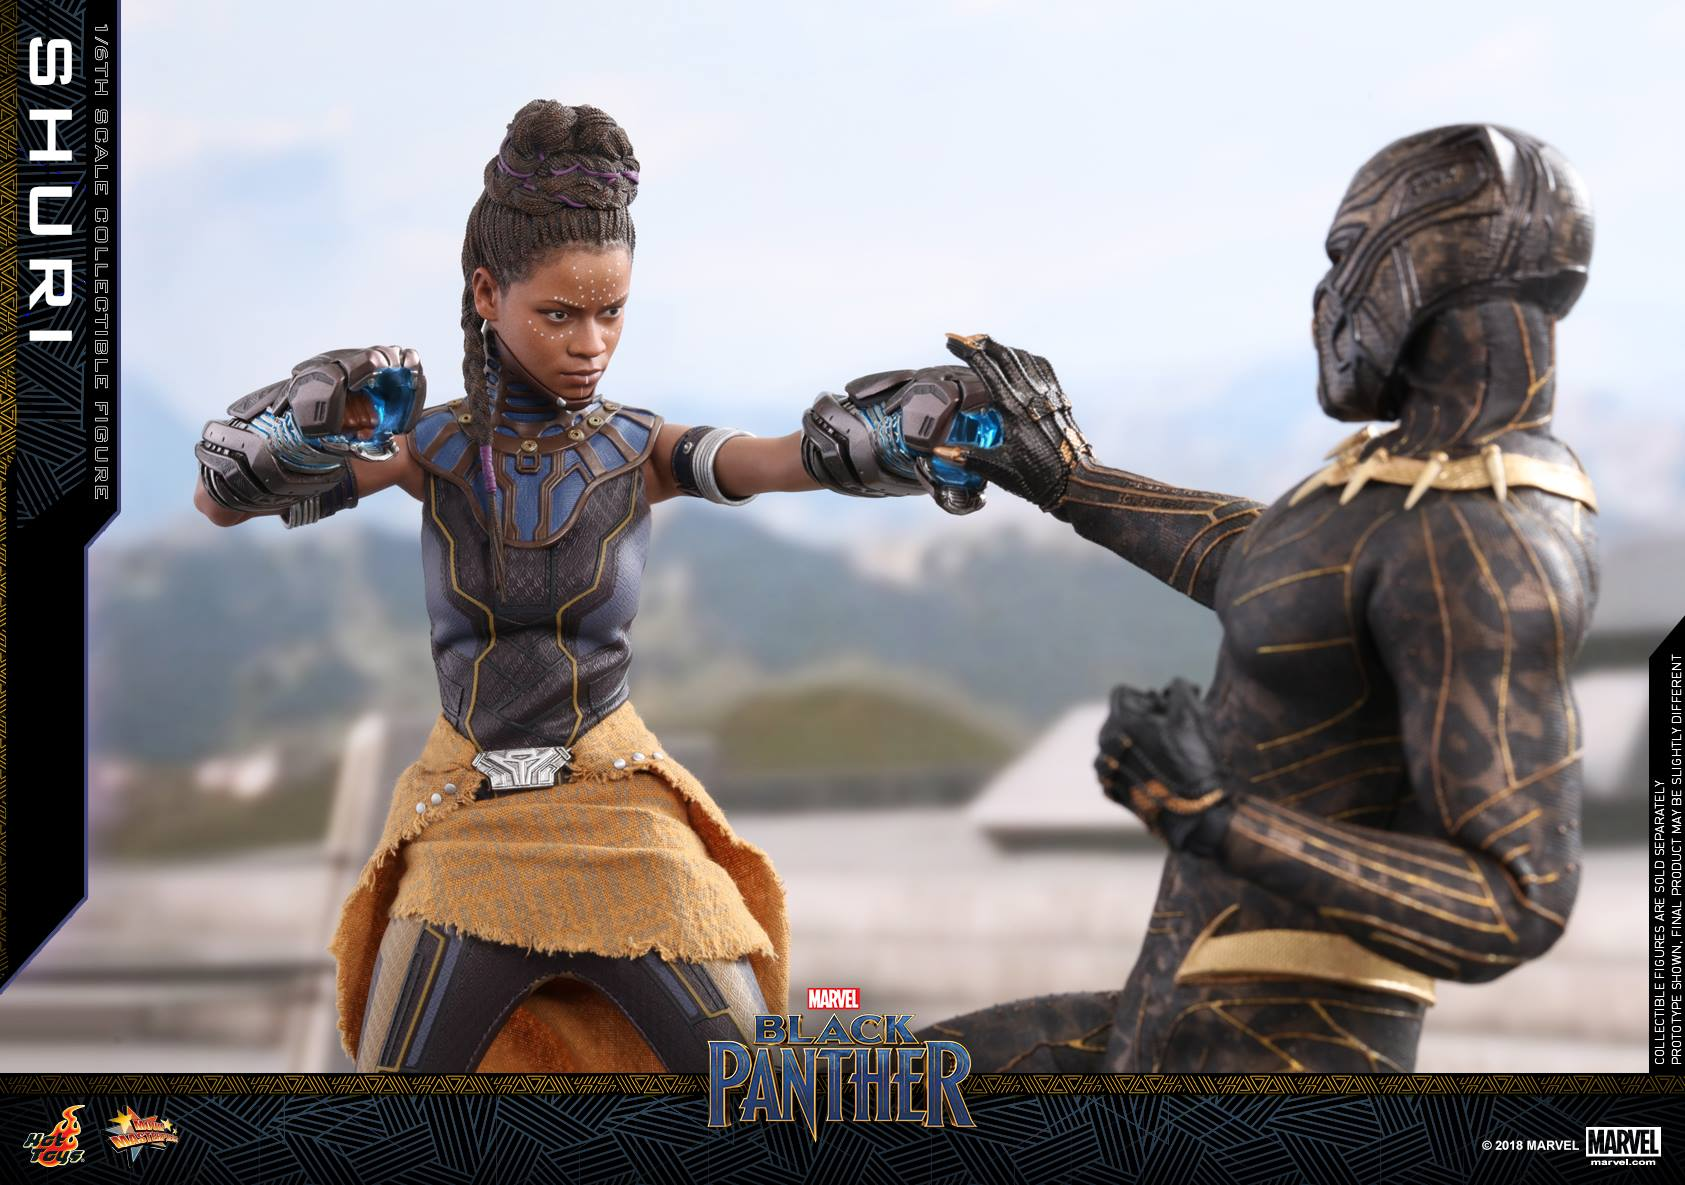 Black Panther Shuri 1 6 Scale Figure By Hot Toys The